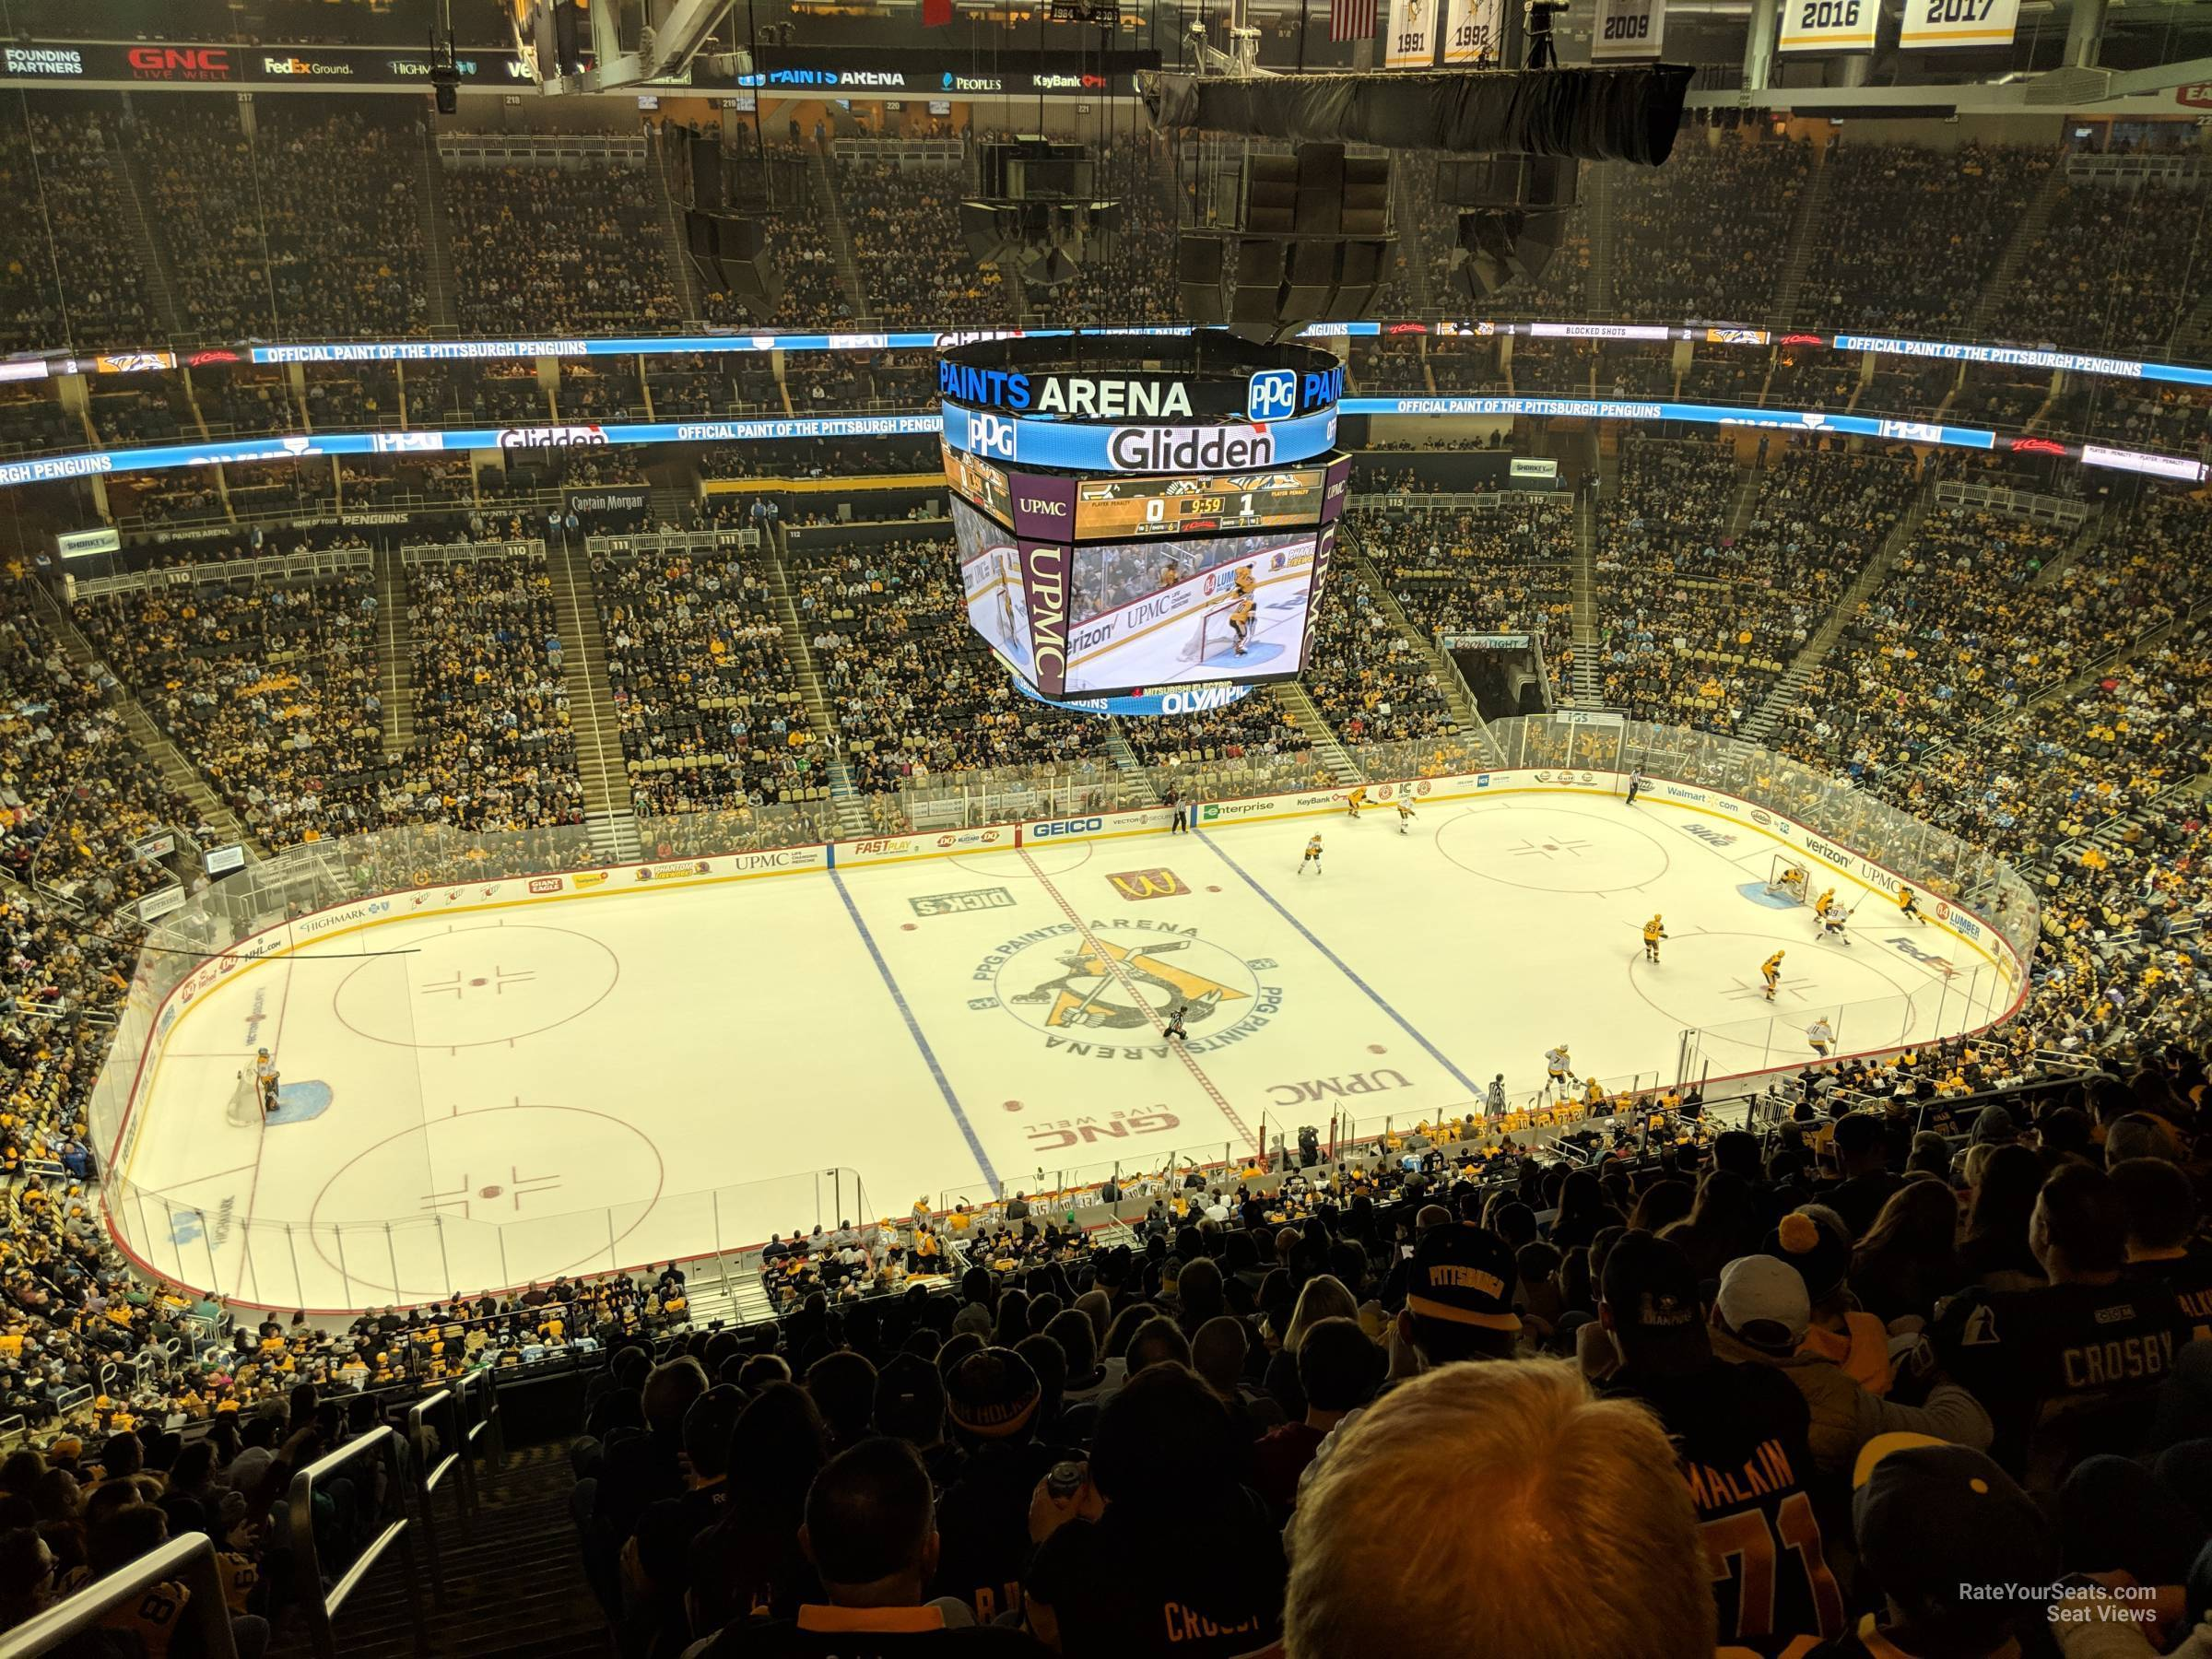 Section 204 seat view